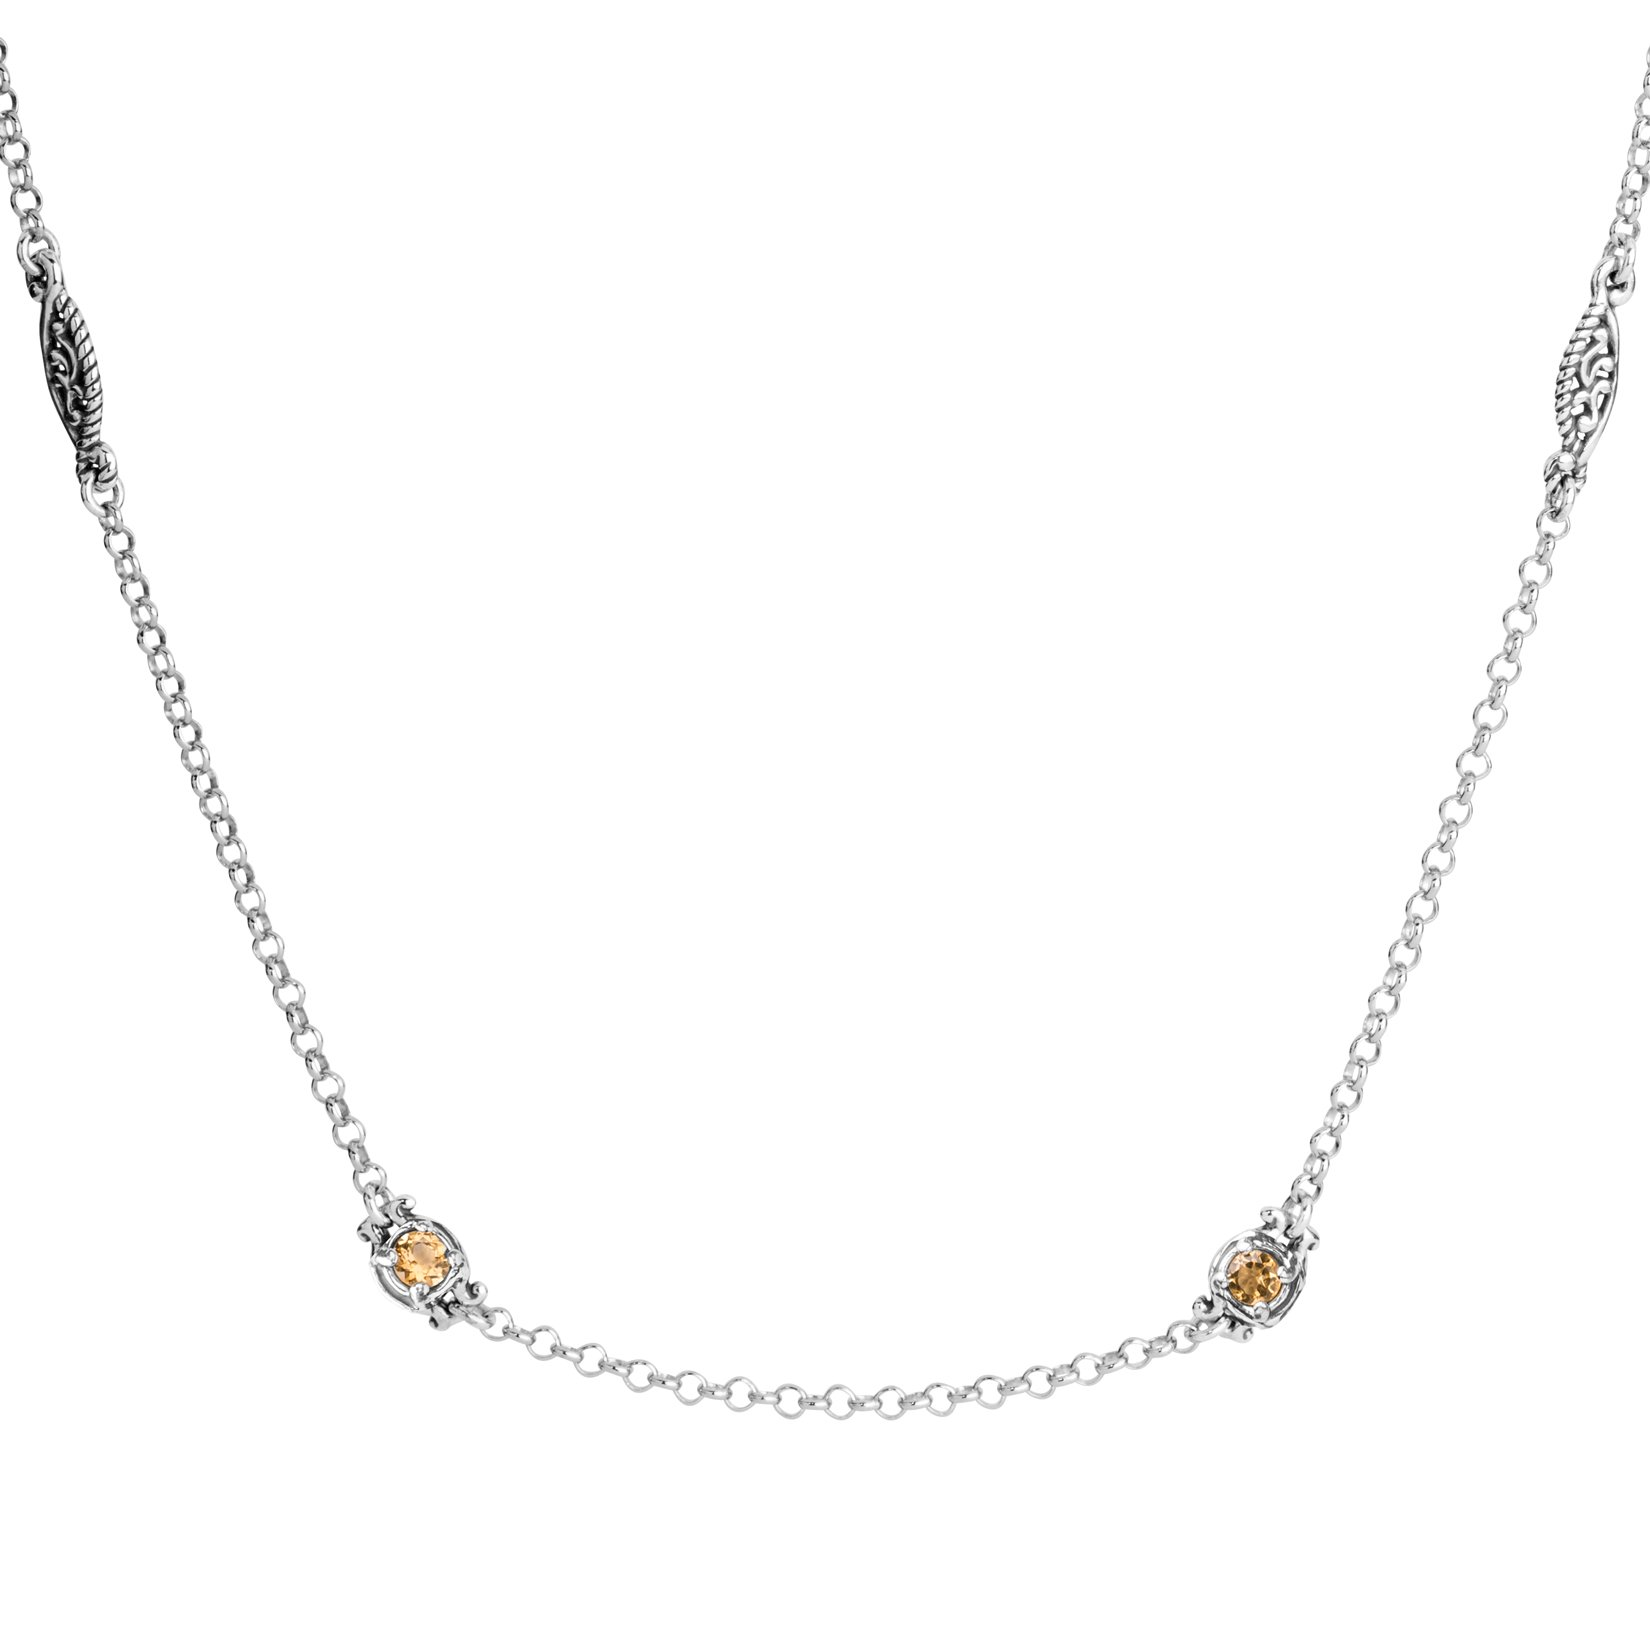 Carolyn Pollack Sterling Silver & Gemstone Stations Necklace 24 Inch Choice of 6 Colors